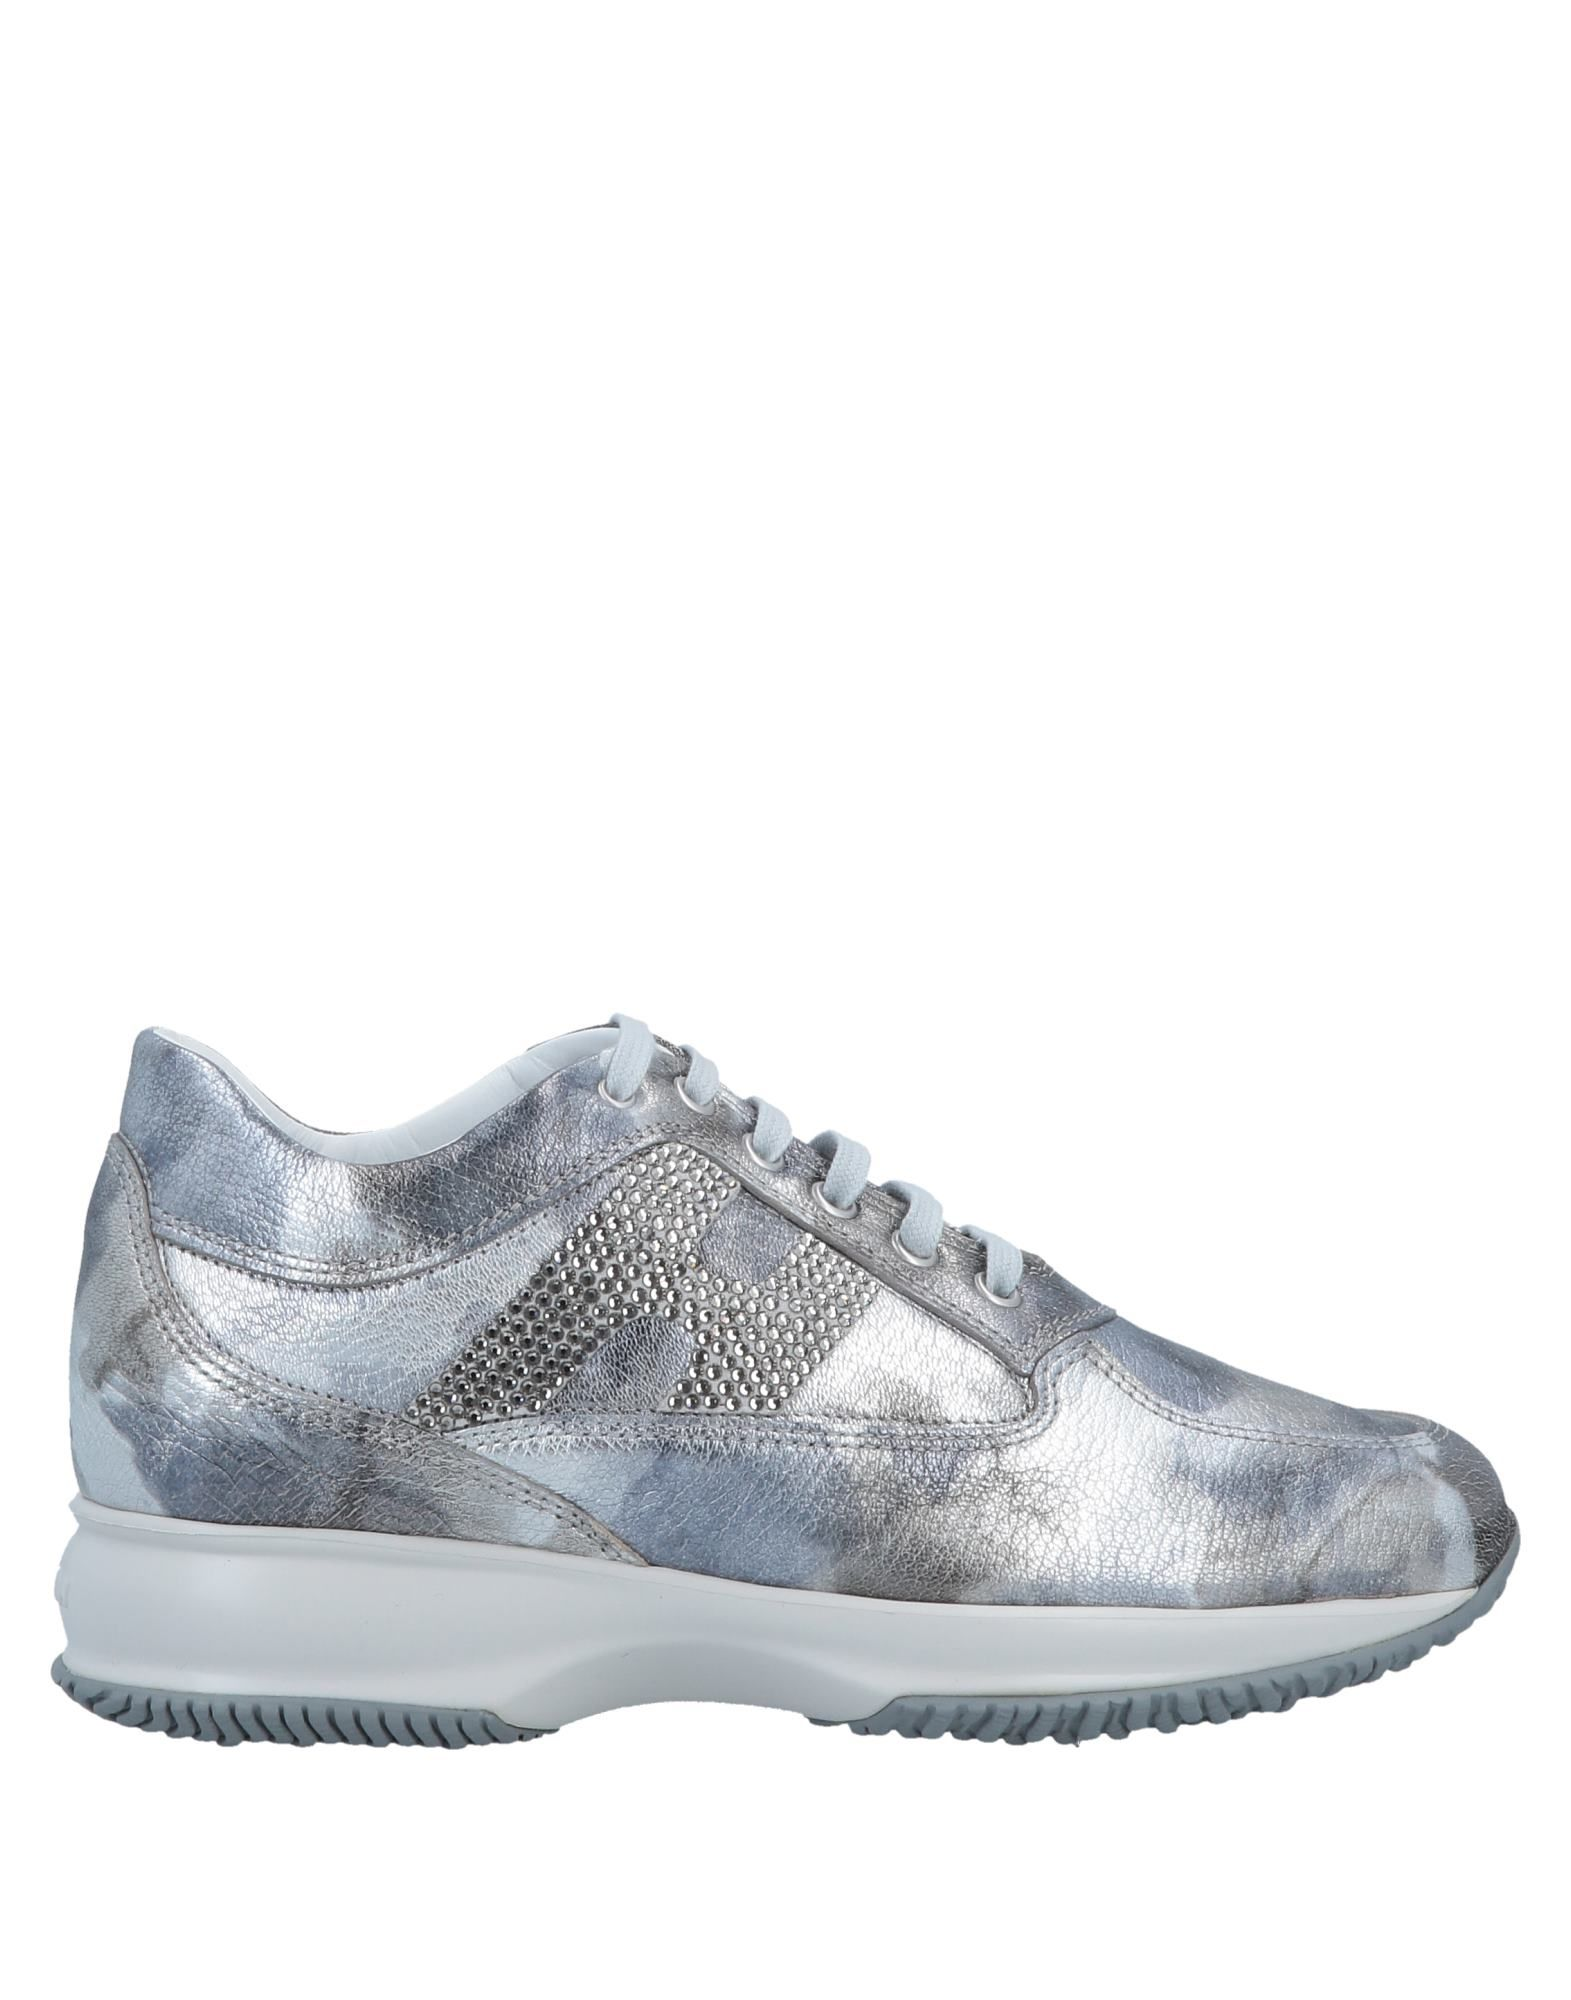 e9e1a047220 Camouflage Sneakers for Women -Spring-Summer and Fall-Winter Collections  Collections